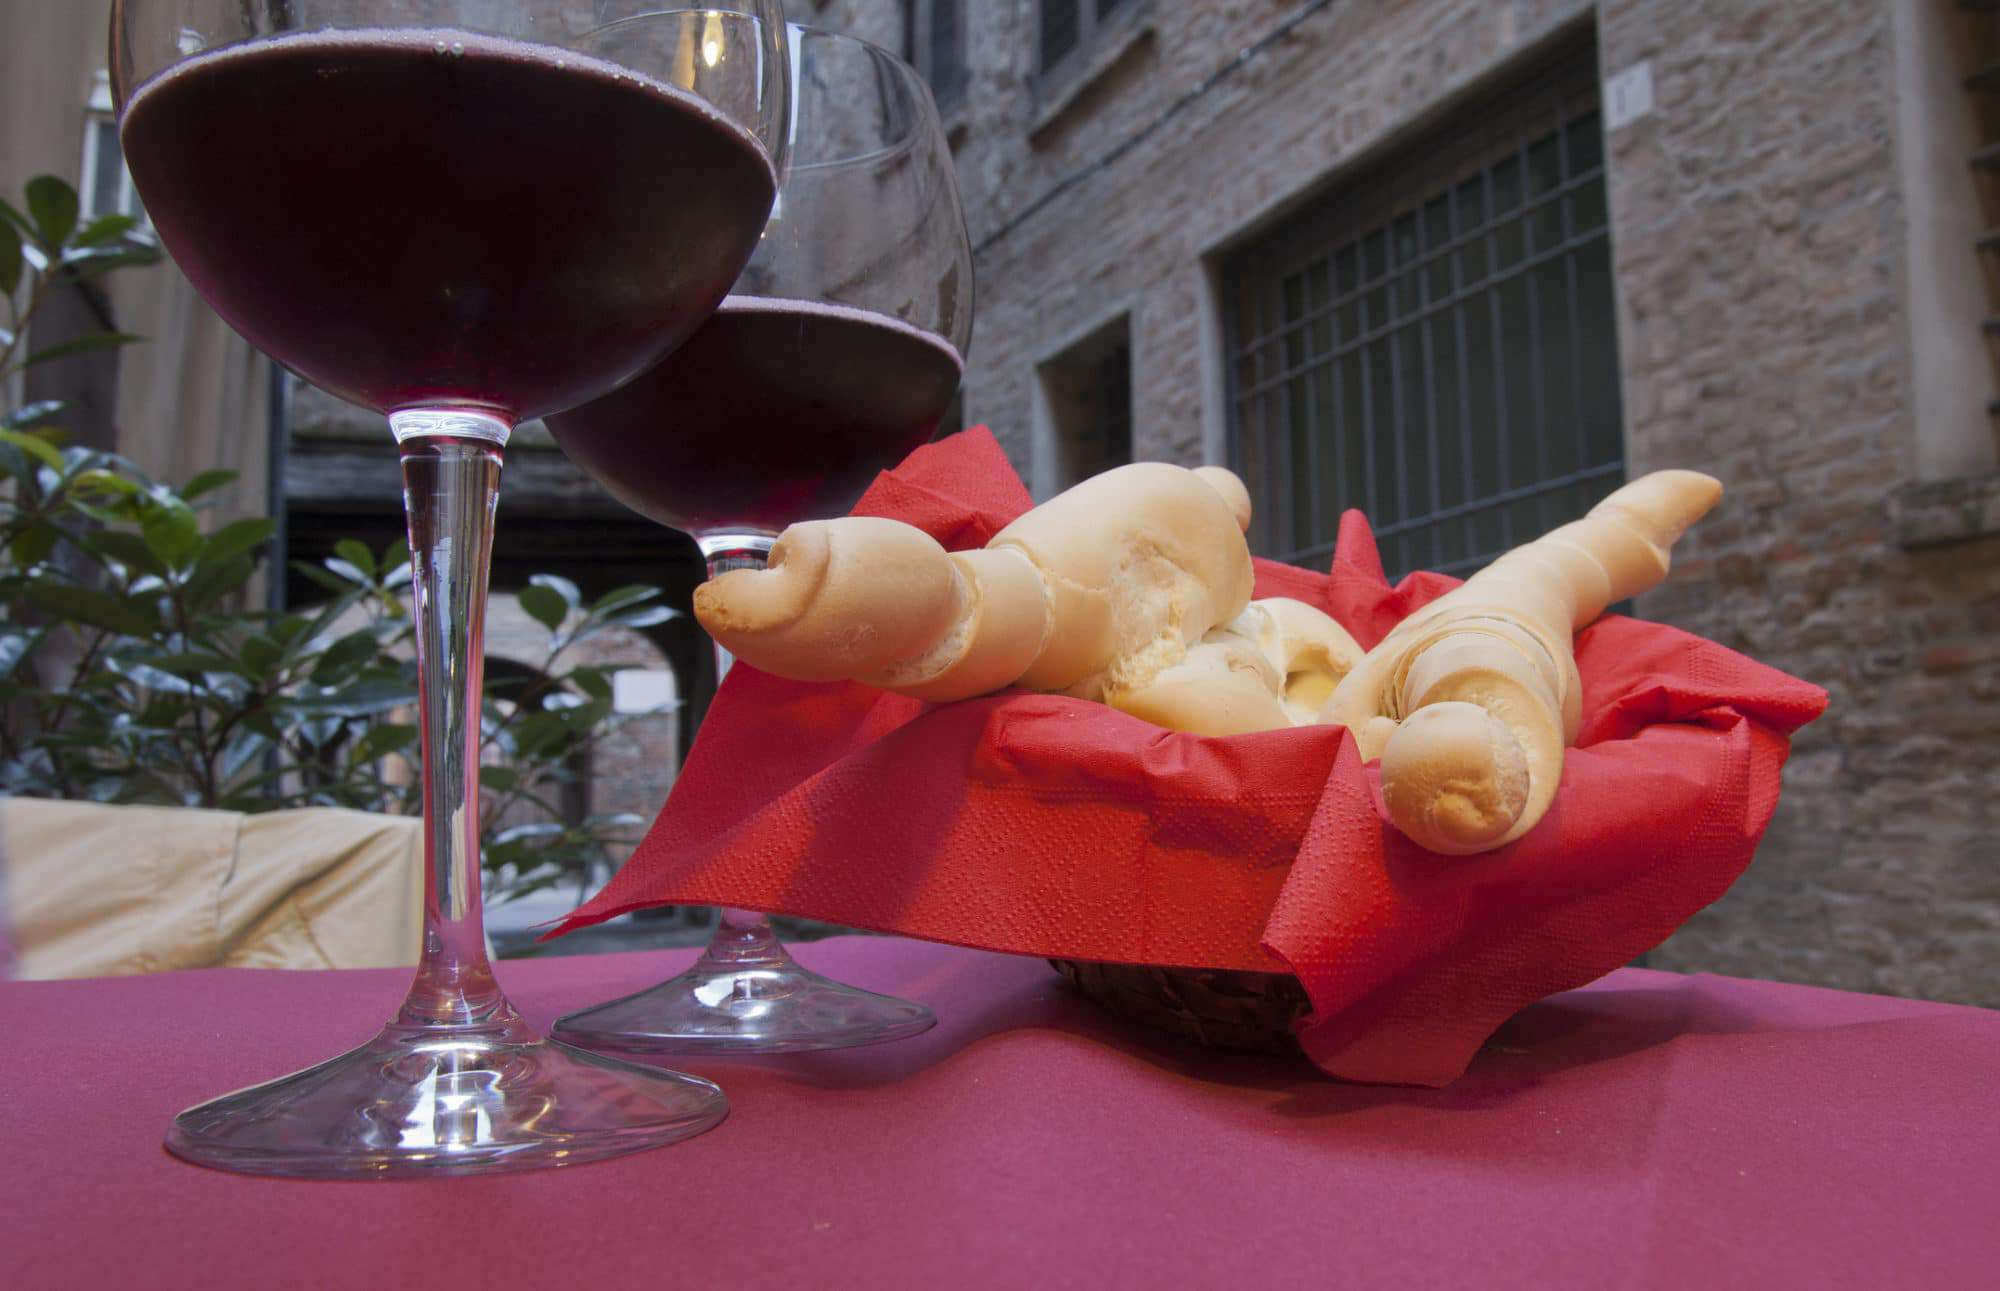 bread and red wine in Ferrara city, Italy